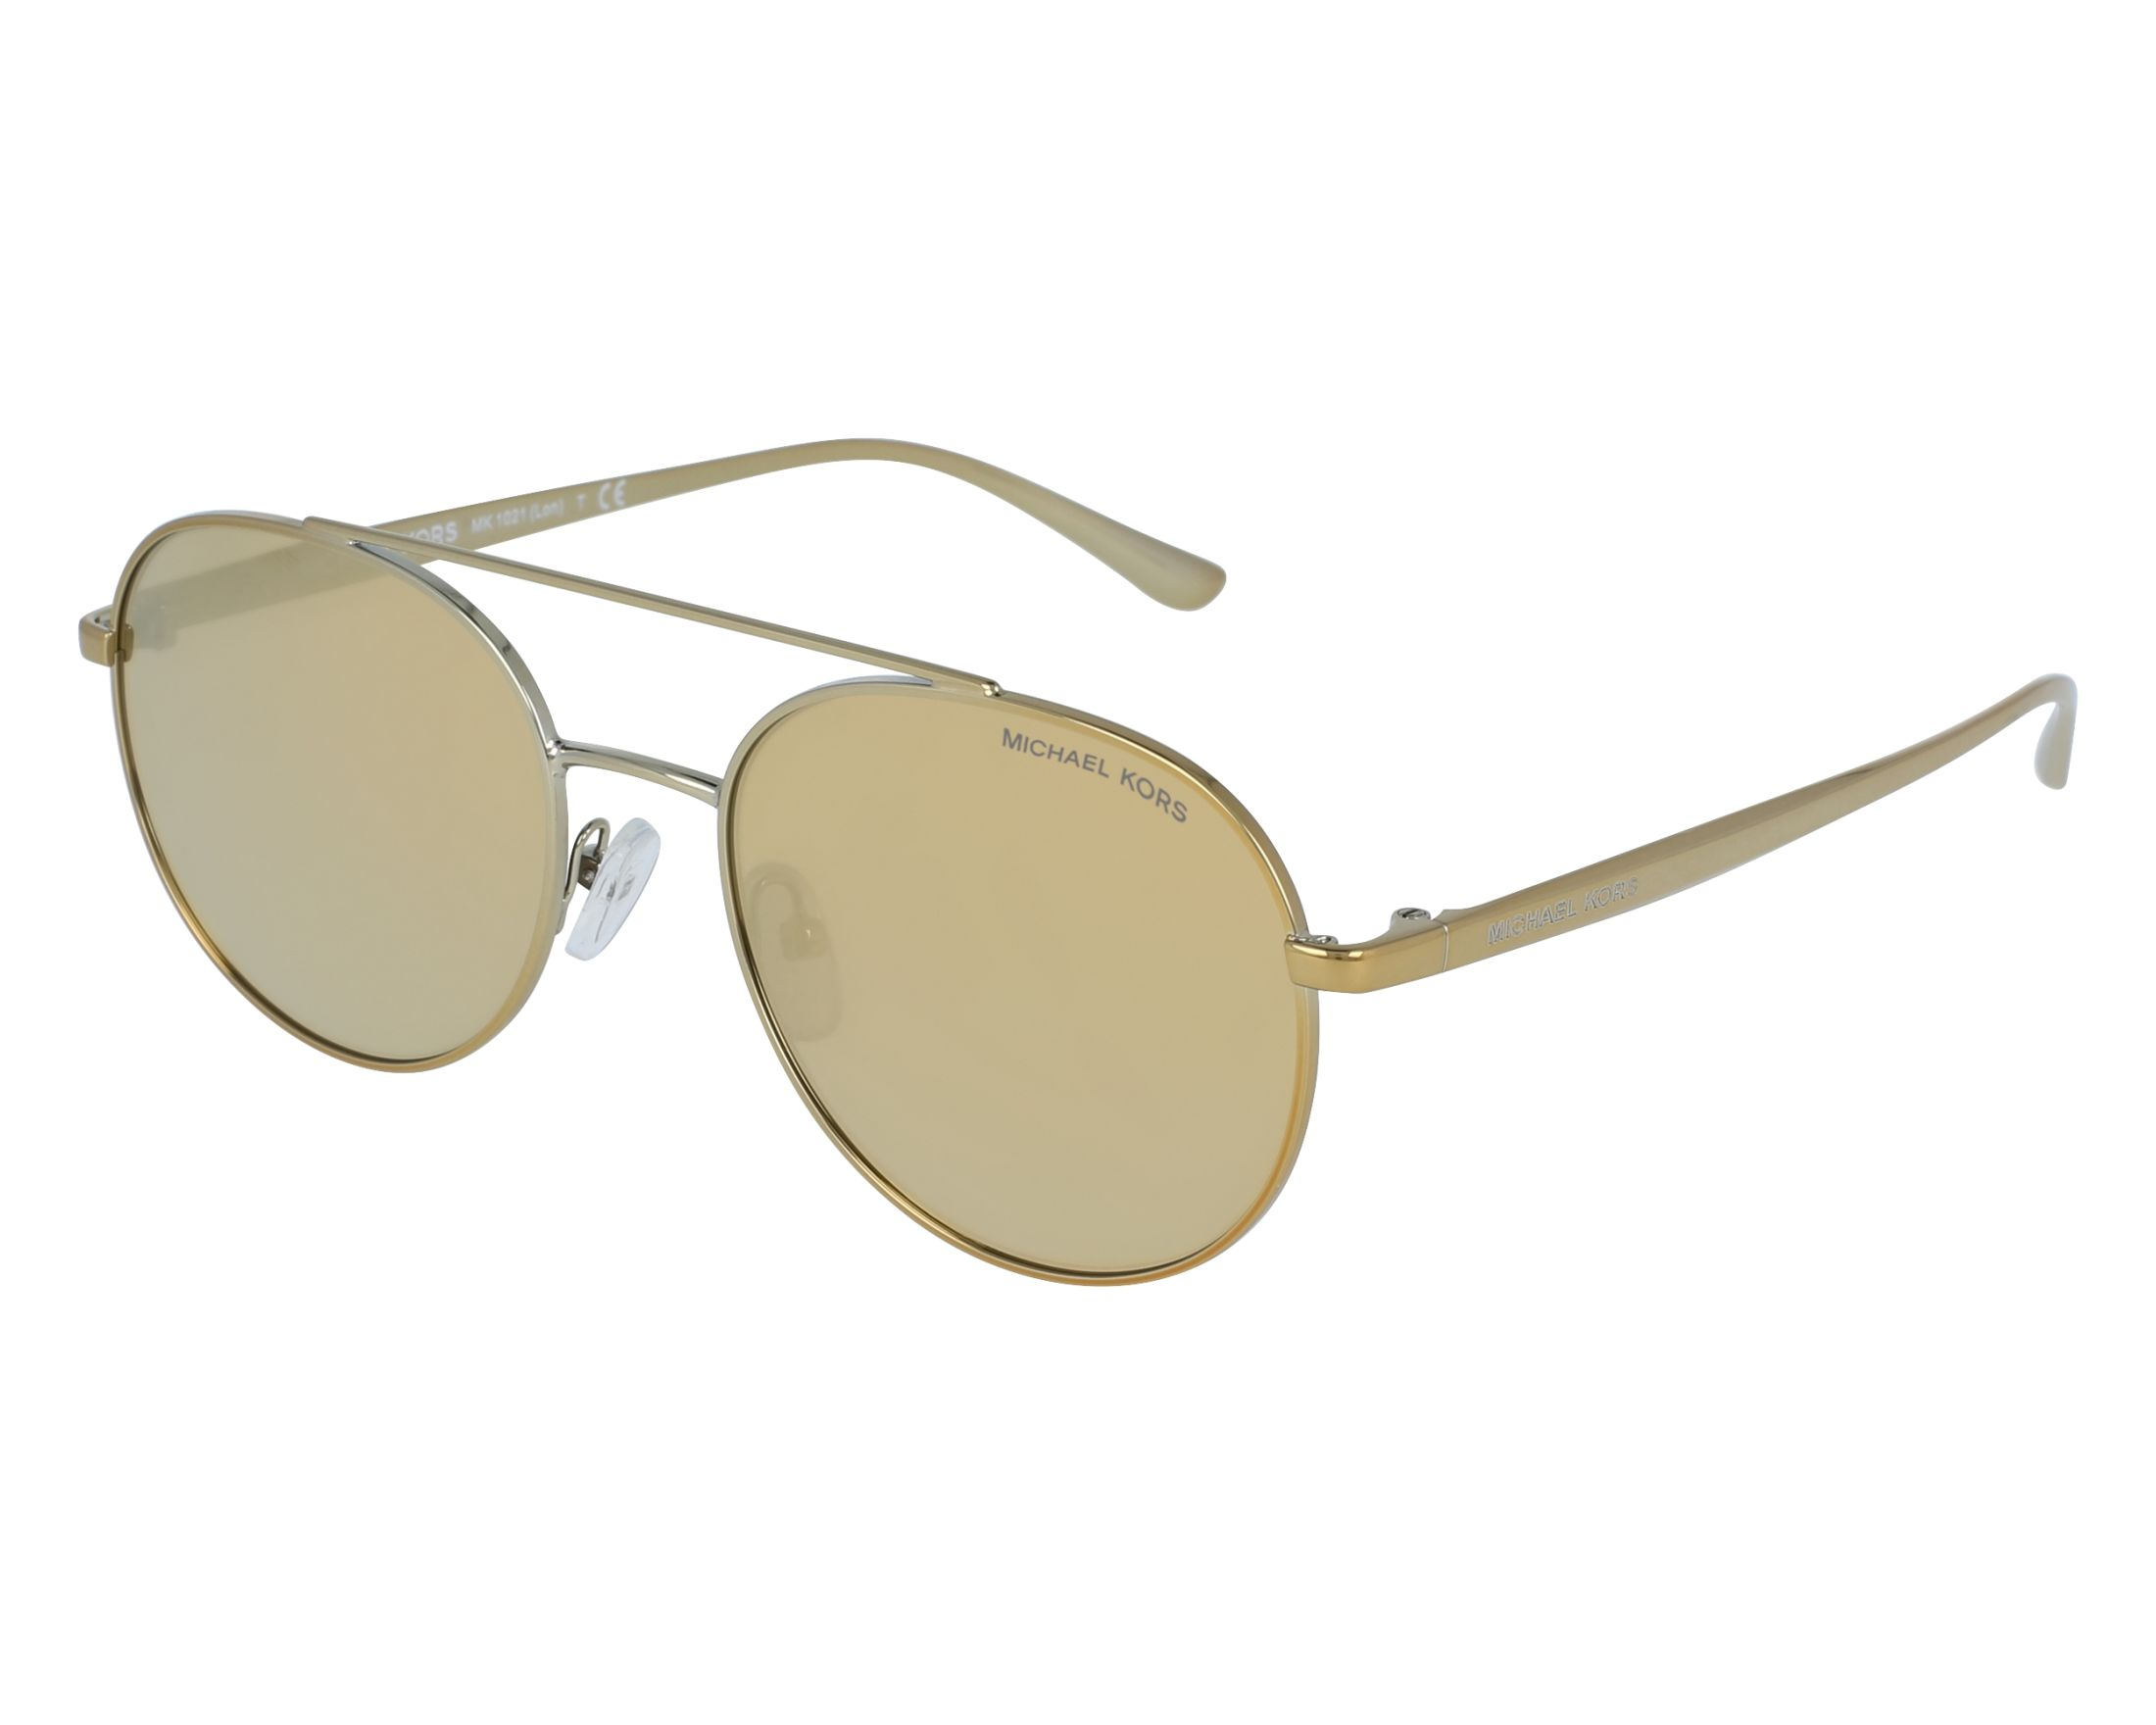 a079cf8ea01 Sunglasses Michael Kors MK-1021 11687P 53-18 Gold front view